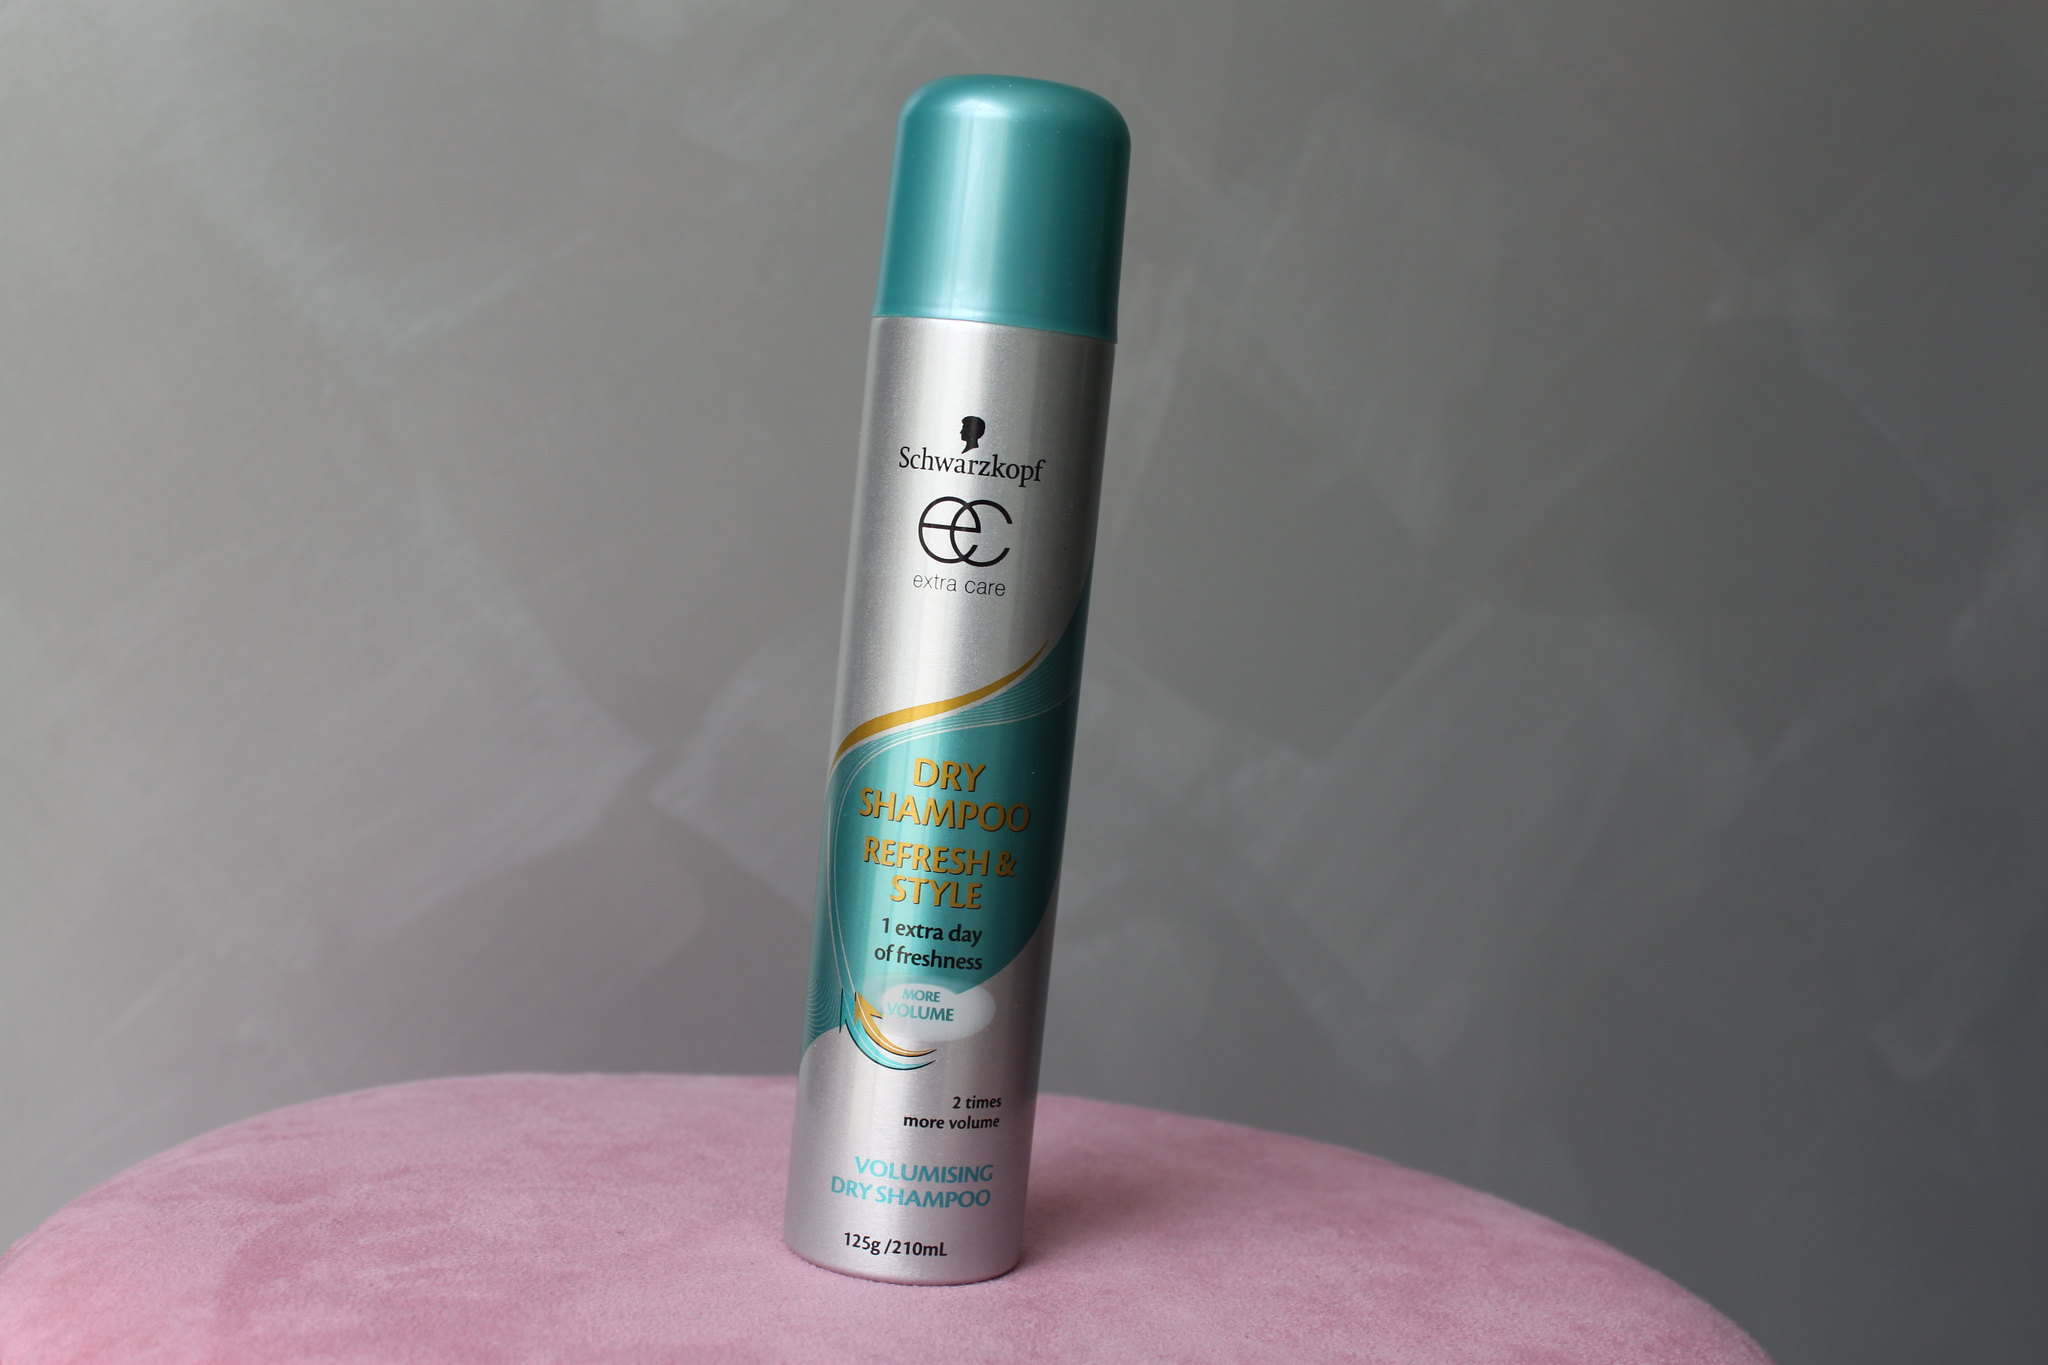 Schwarzkopf hair australian beauty review ausbeautyreview extra care dry conditioner fresh hair oil mist smooth shine argandaily weightless finish shampoo restyle healthyblogger blog priceline volume (5)